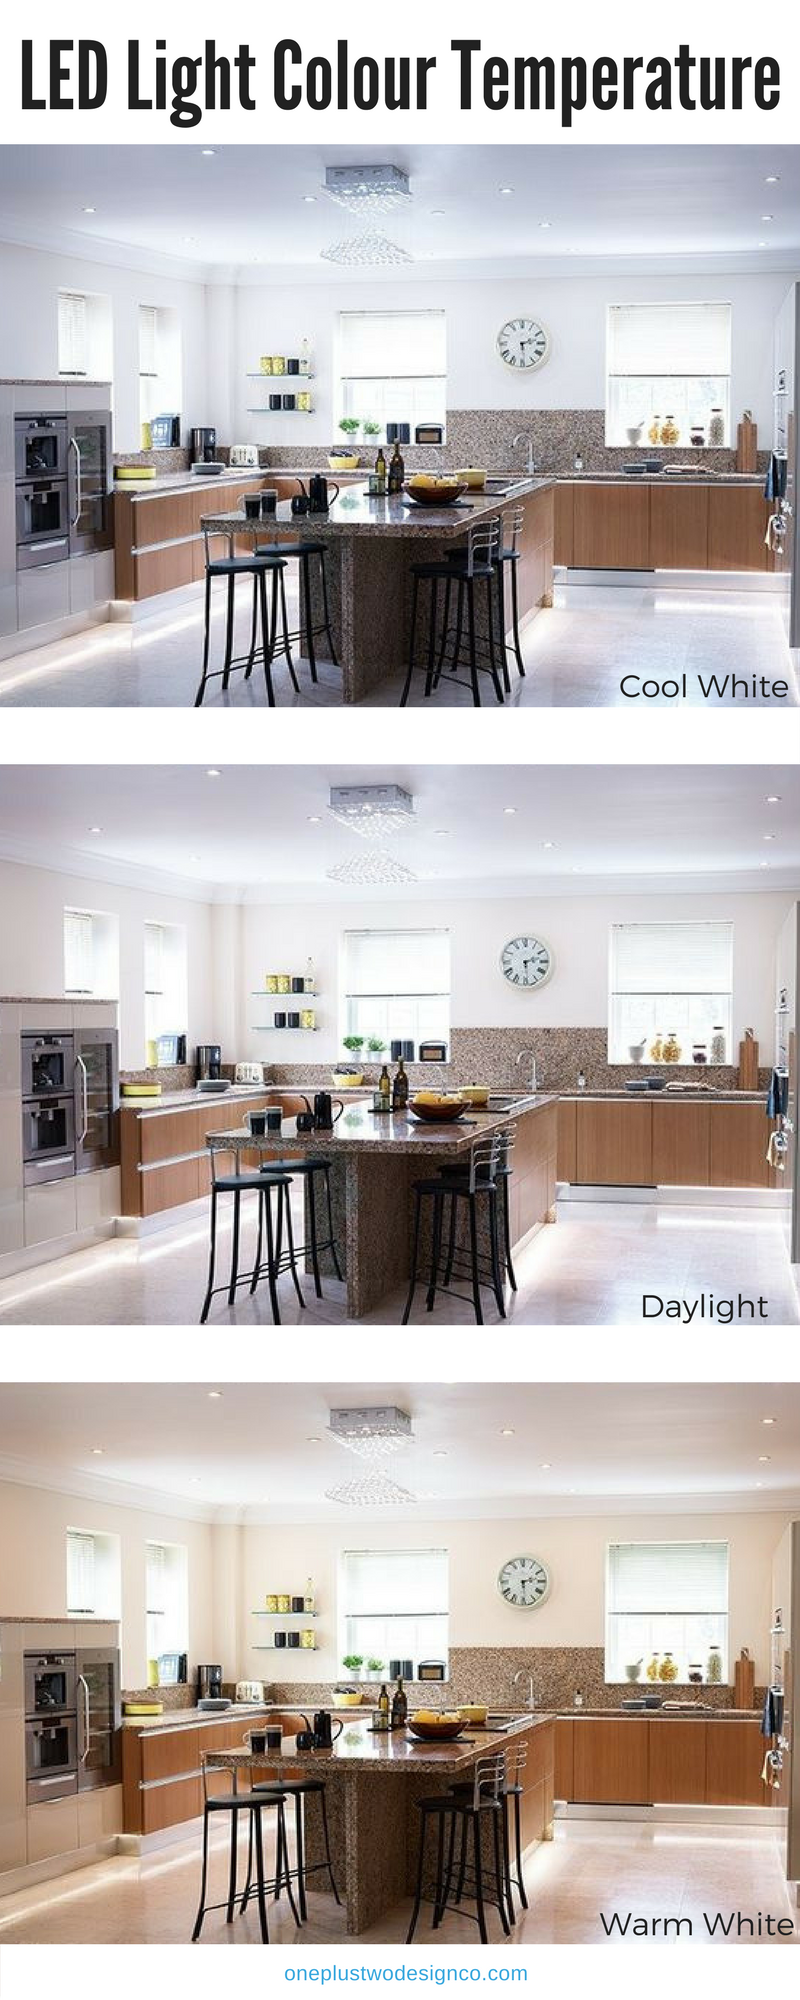 Understanding Light Colour Temperature Can Help You Choose The Right Lighting For Your Space Learn How Warm And Cool Differ When To Use Each